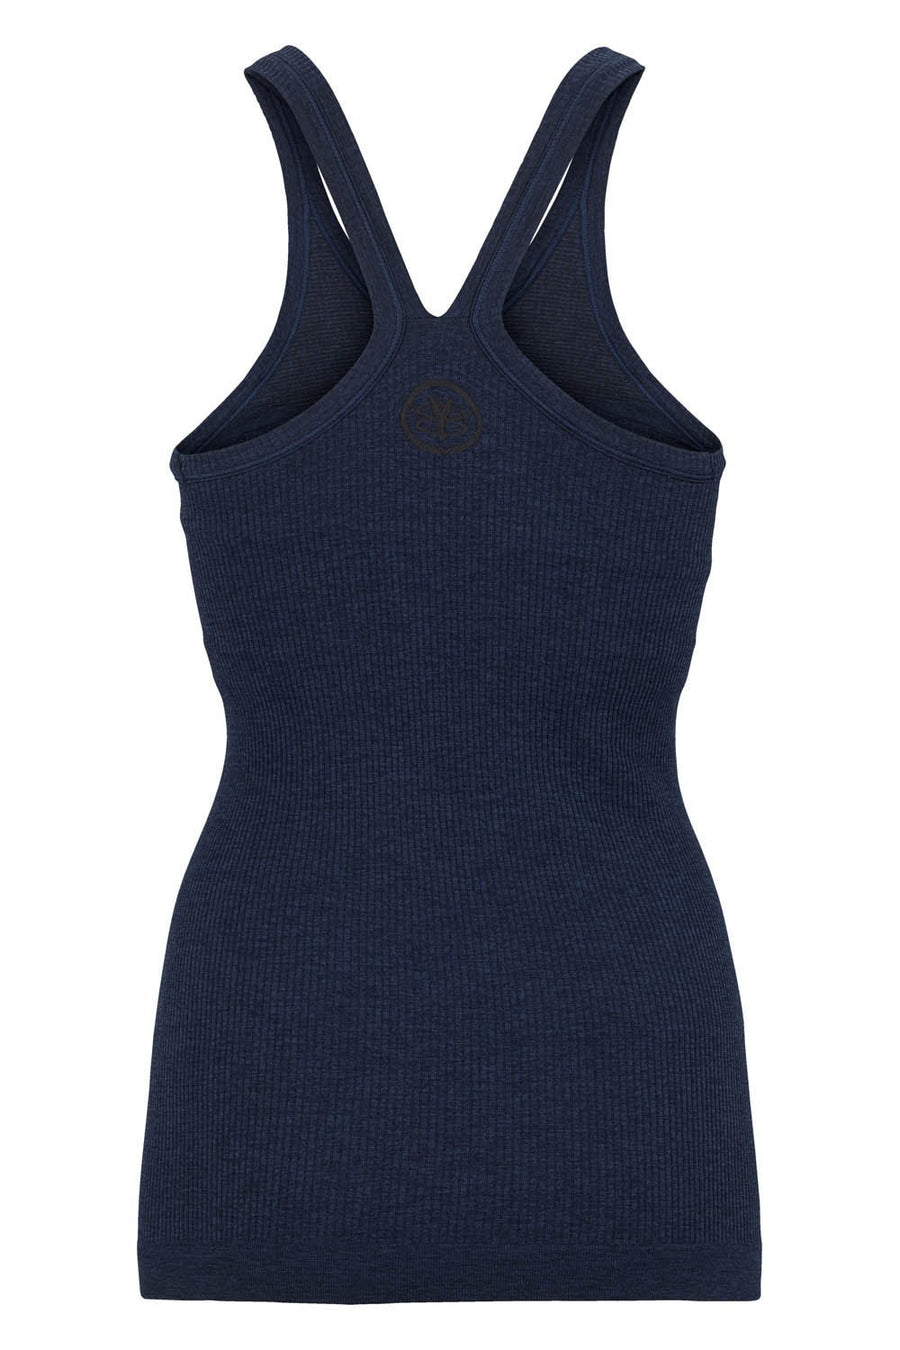 Y-Back Tank W/ Bra - Navy